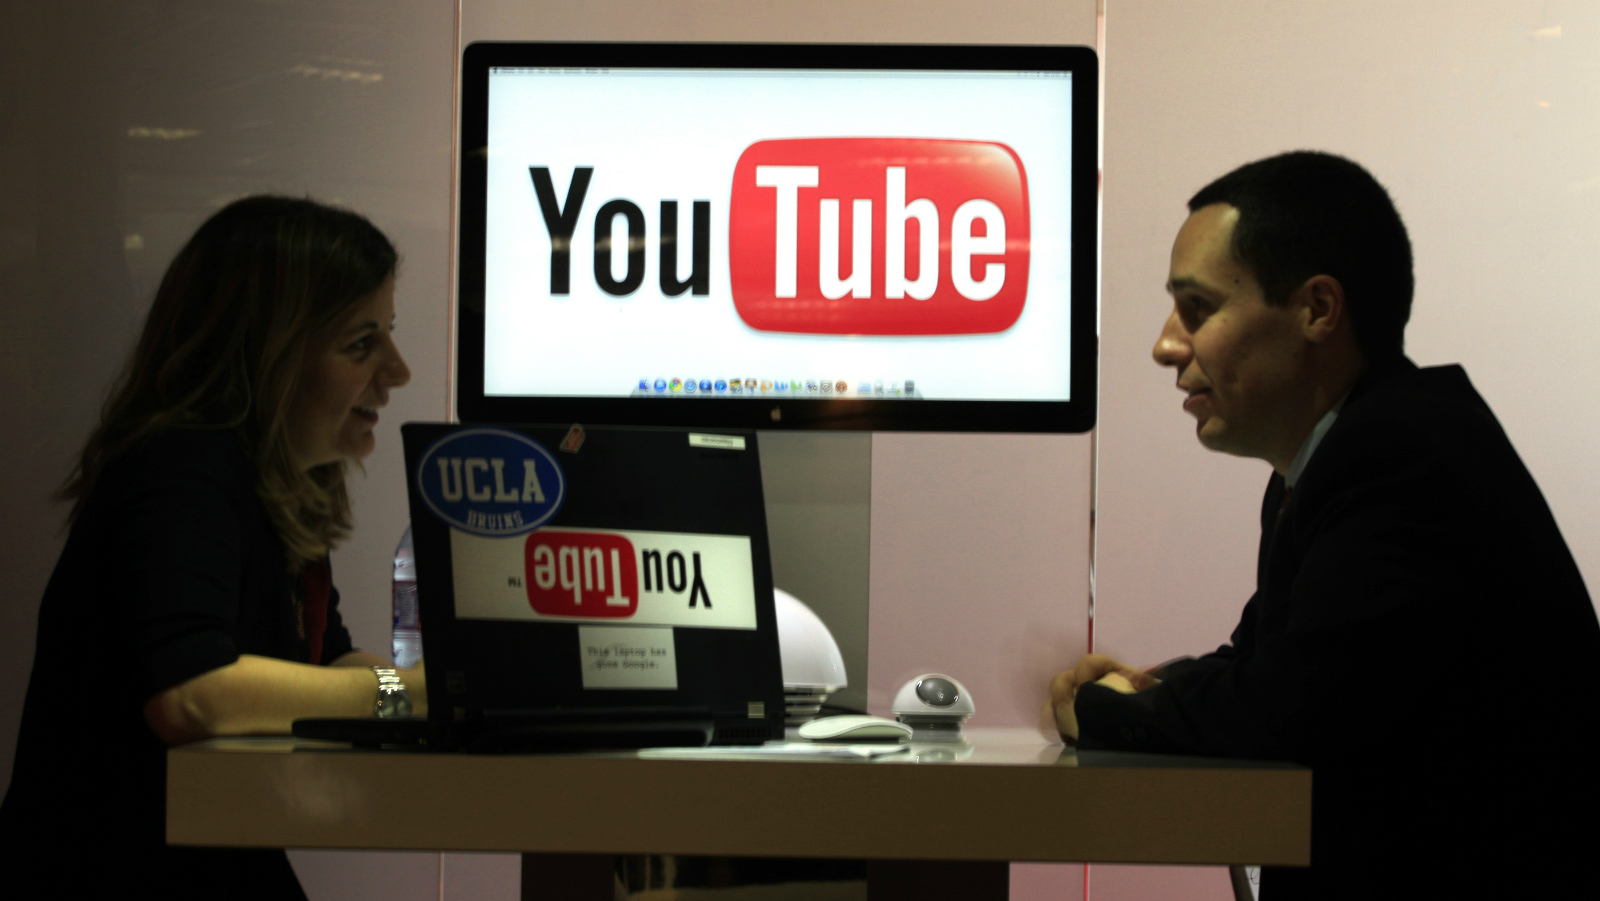 """Visitors are seen at """"You Tube"""" stand during the MIDEM, which is the international record music publishing and video music market, in Cannes January 23, 2011."""